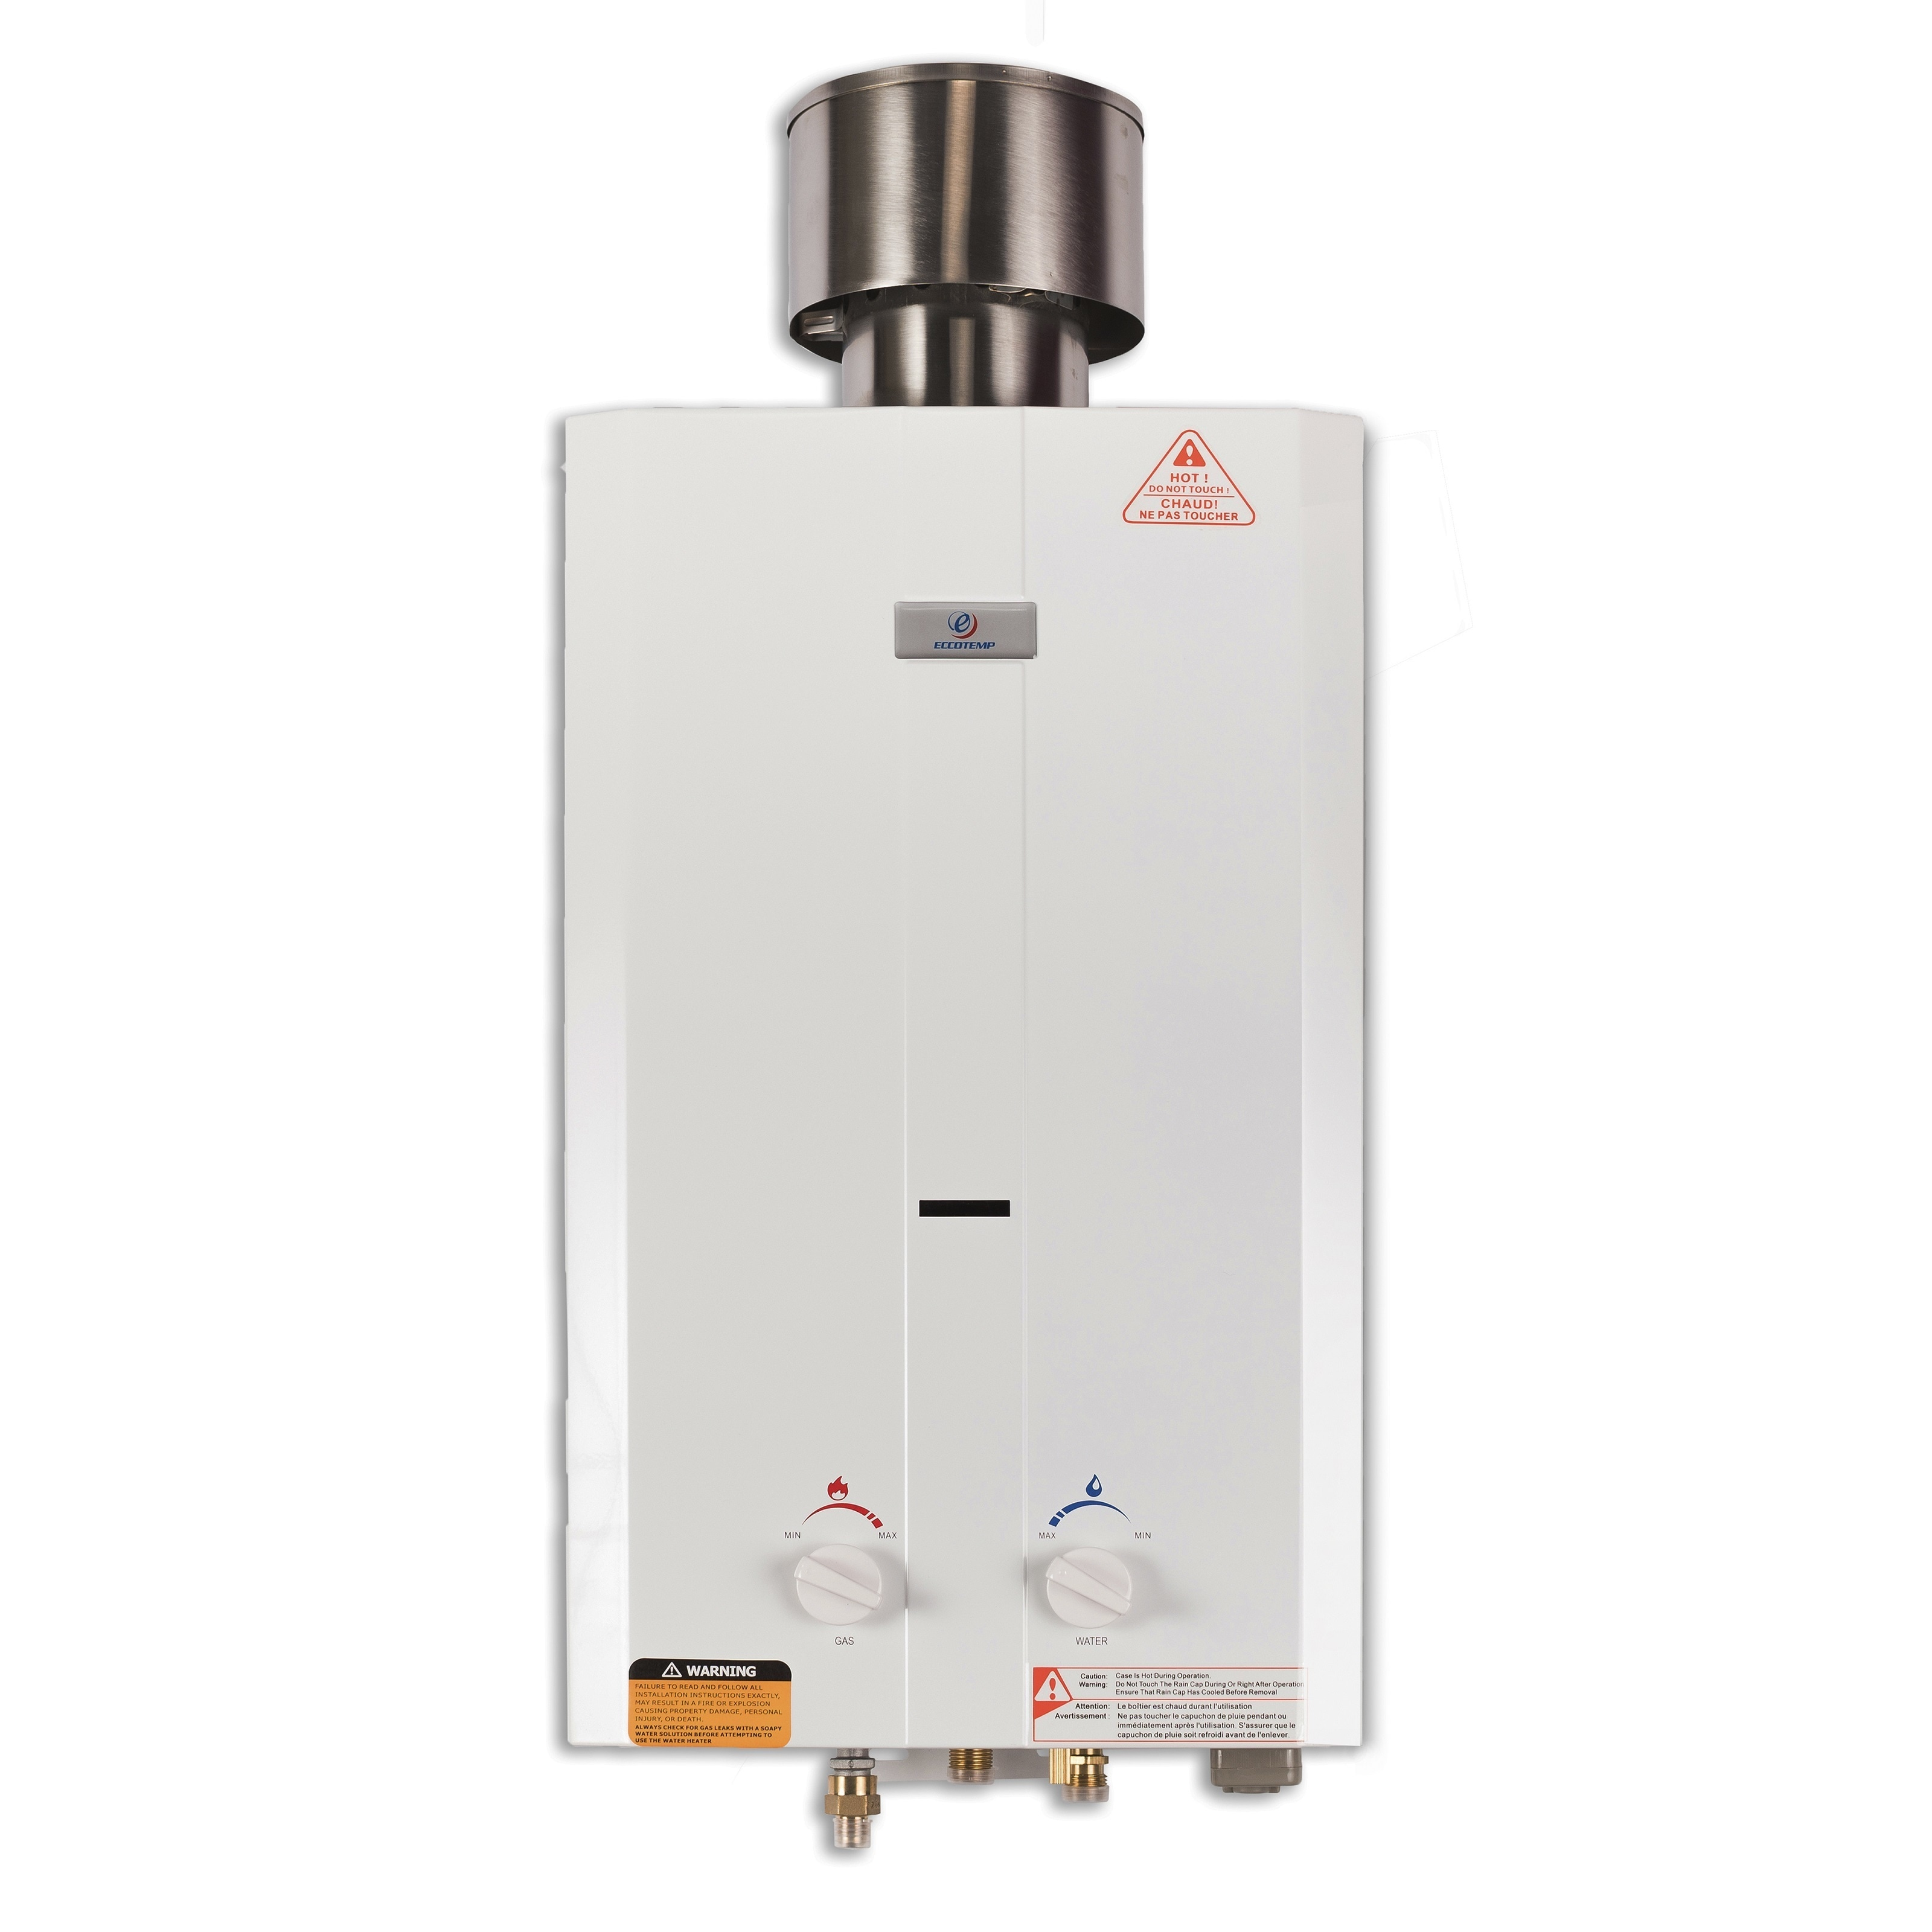 Eccotemp L10 Portable Outdoor Tankless Water Heater w/ Sh...